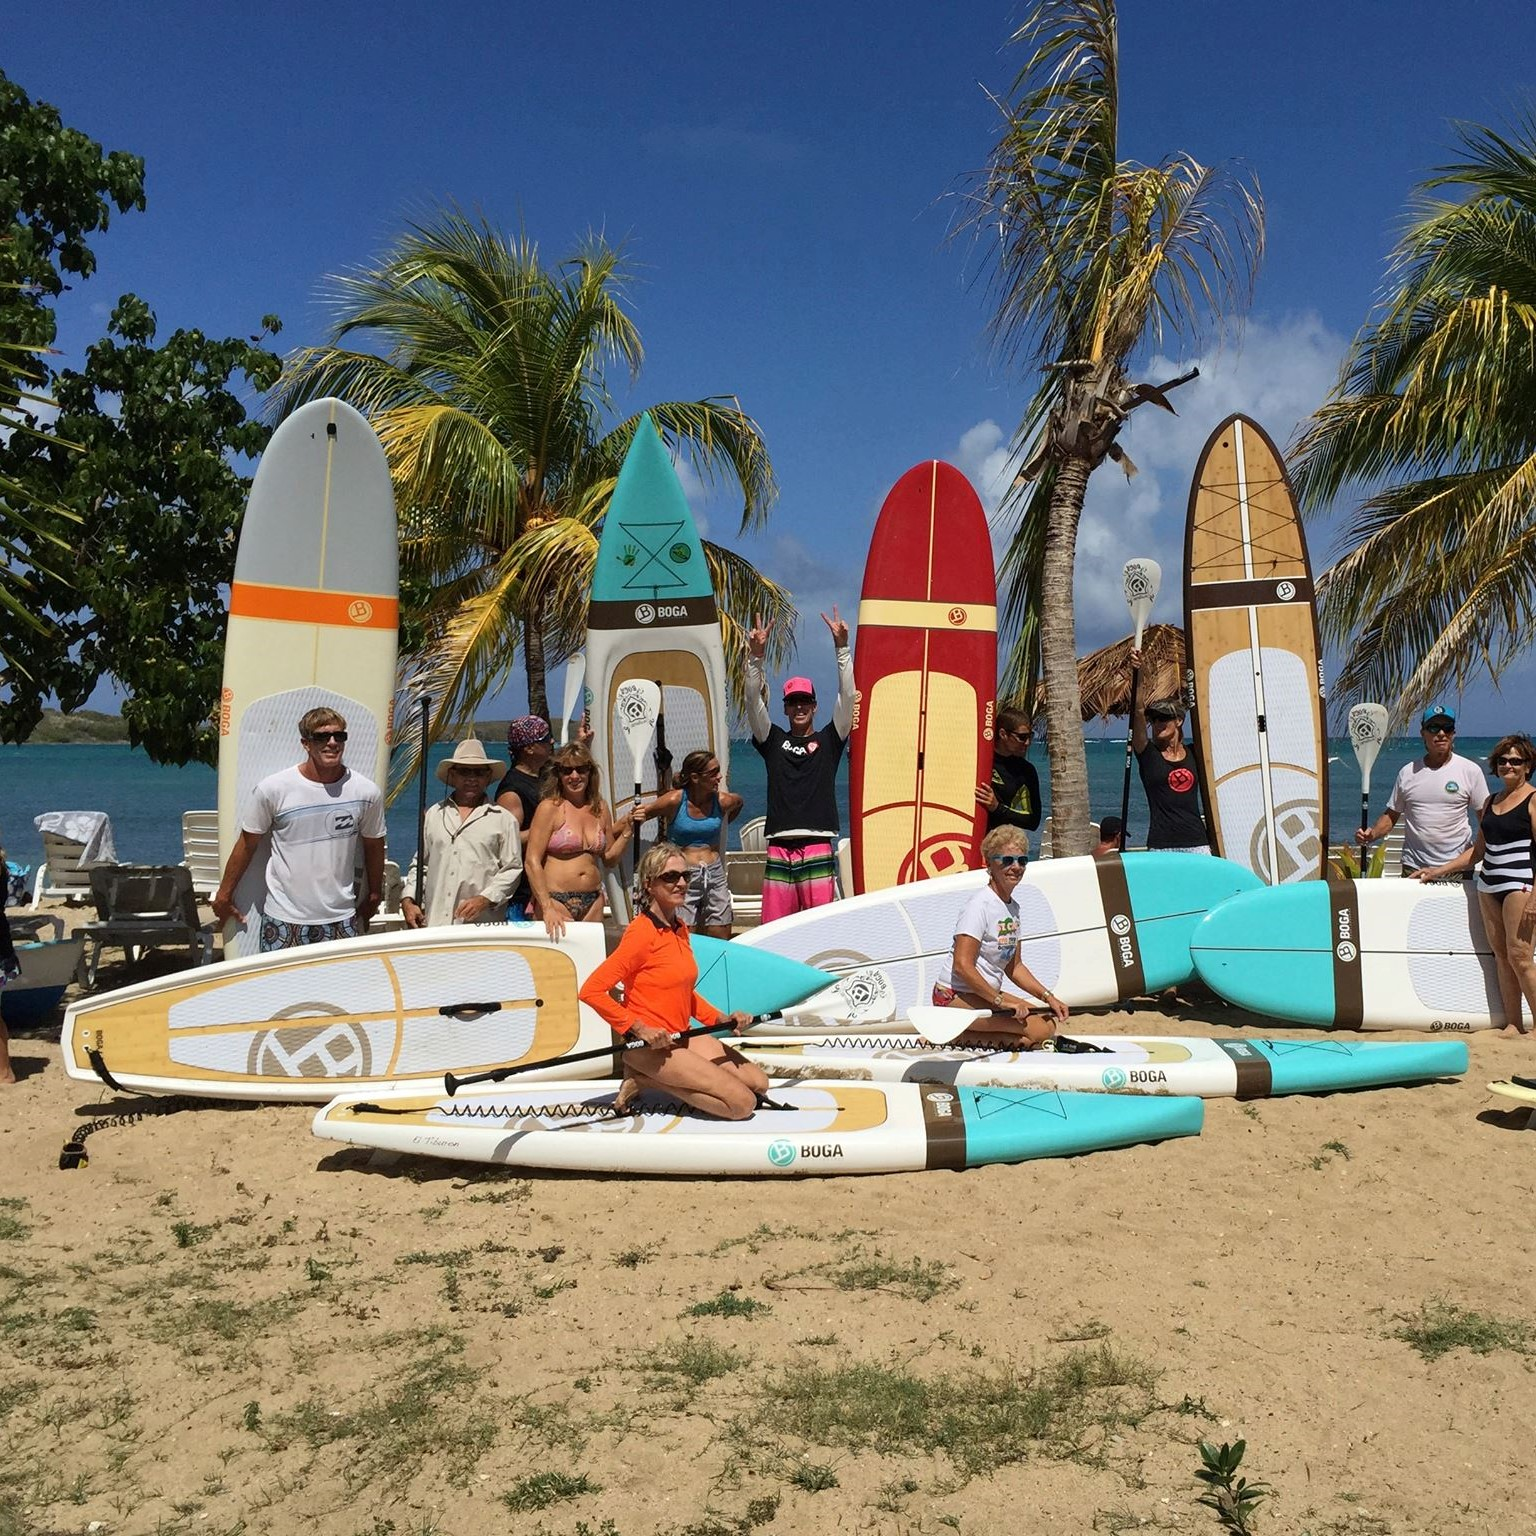 Paddleboard rentals at the east end paddle club